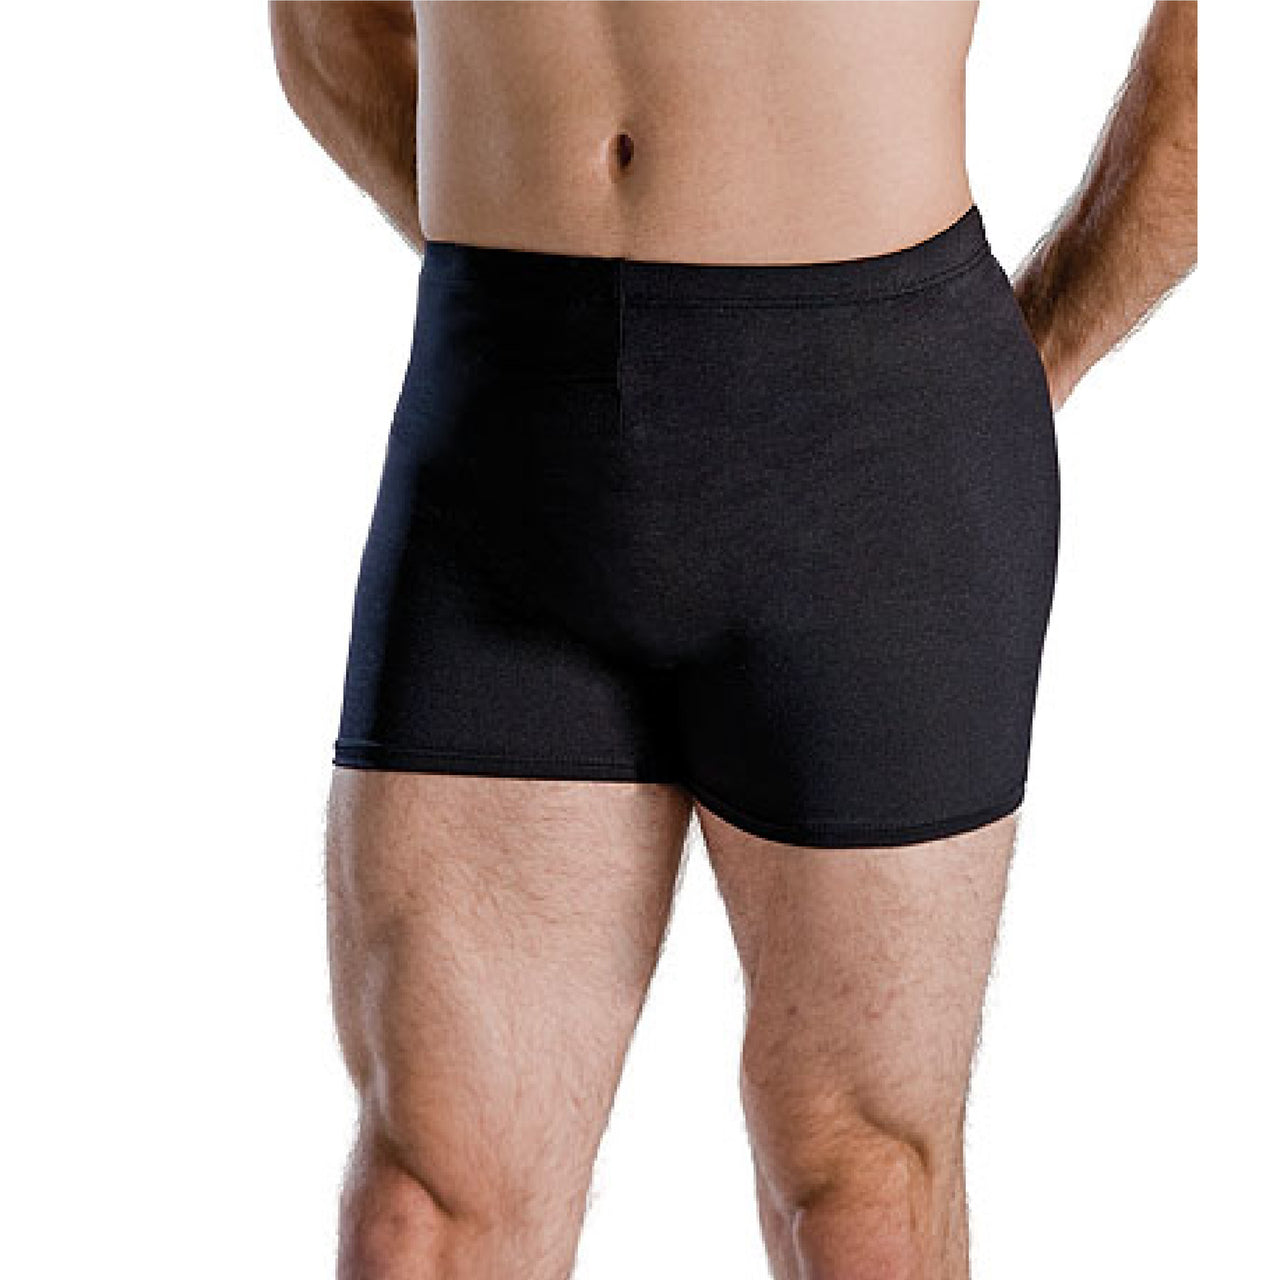 Motionwear 7199 - Bike Shorts Silkskyn Men